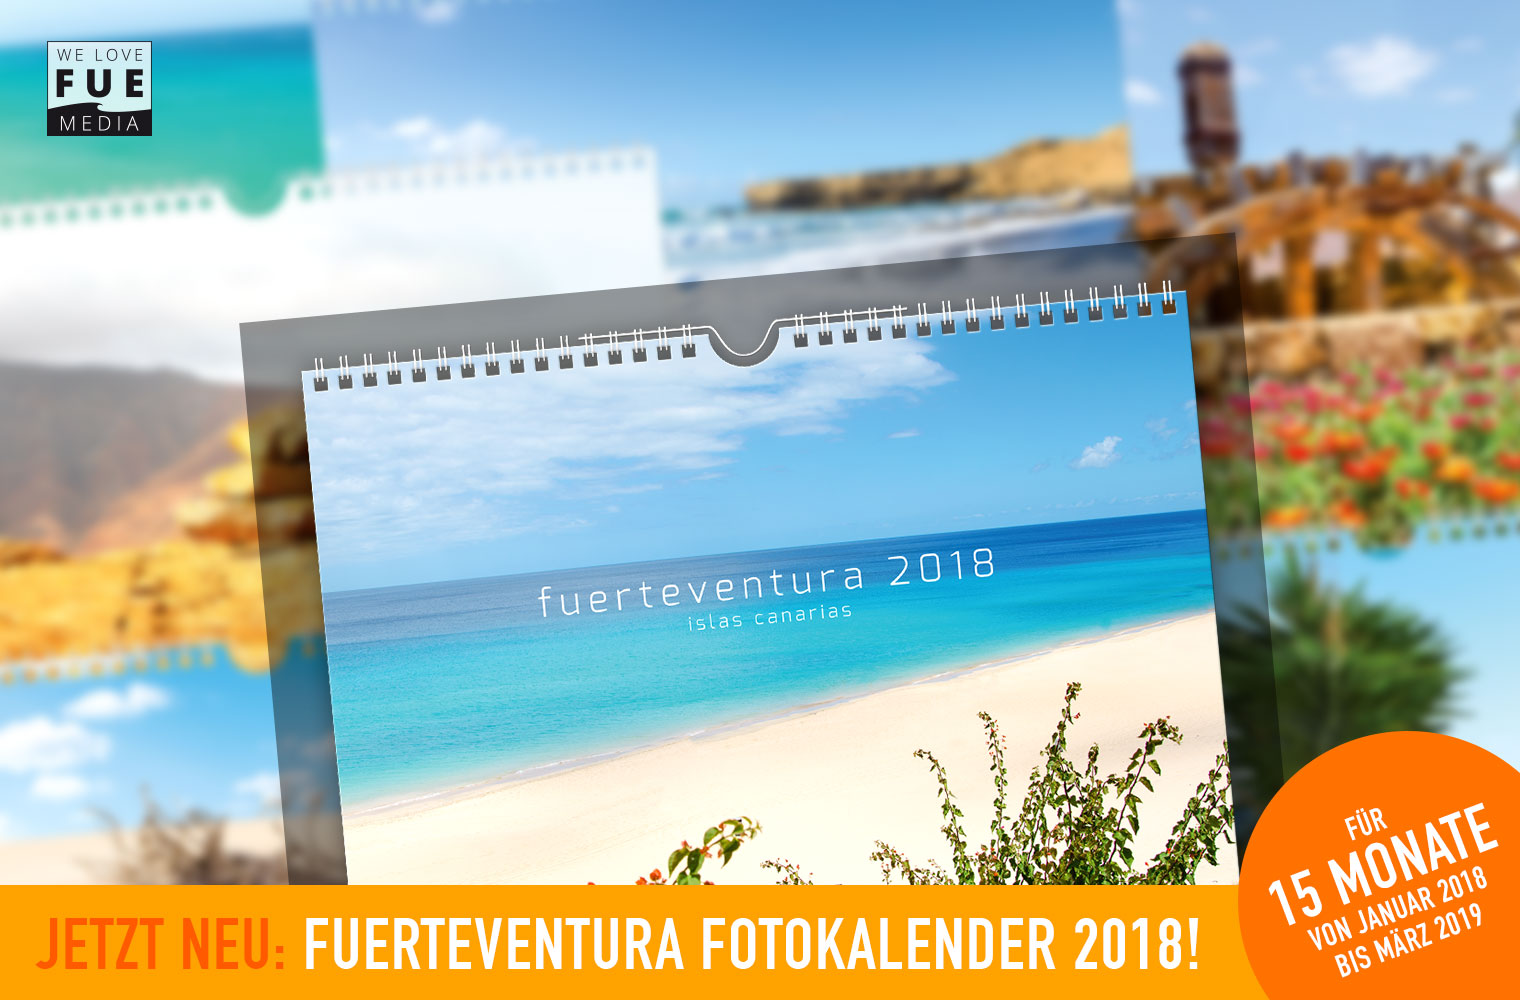 fuerteventura fotos der fuerteventura fotokalender 2018. Black Bedroom Furniture Sets. Home Design Ideas